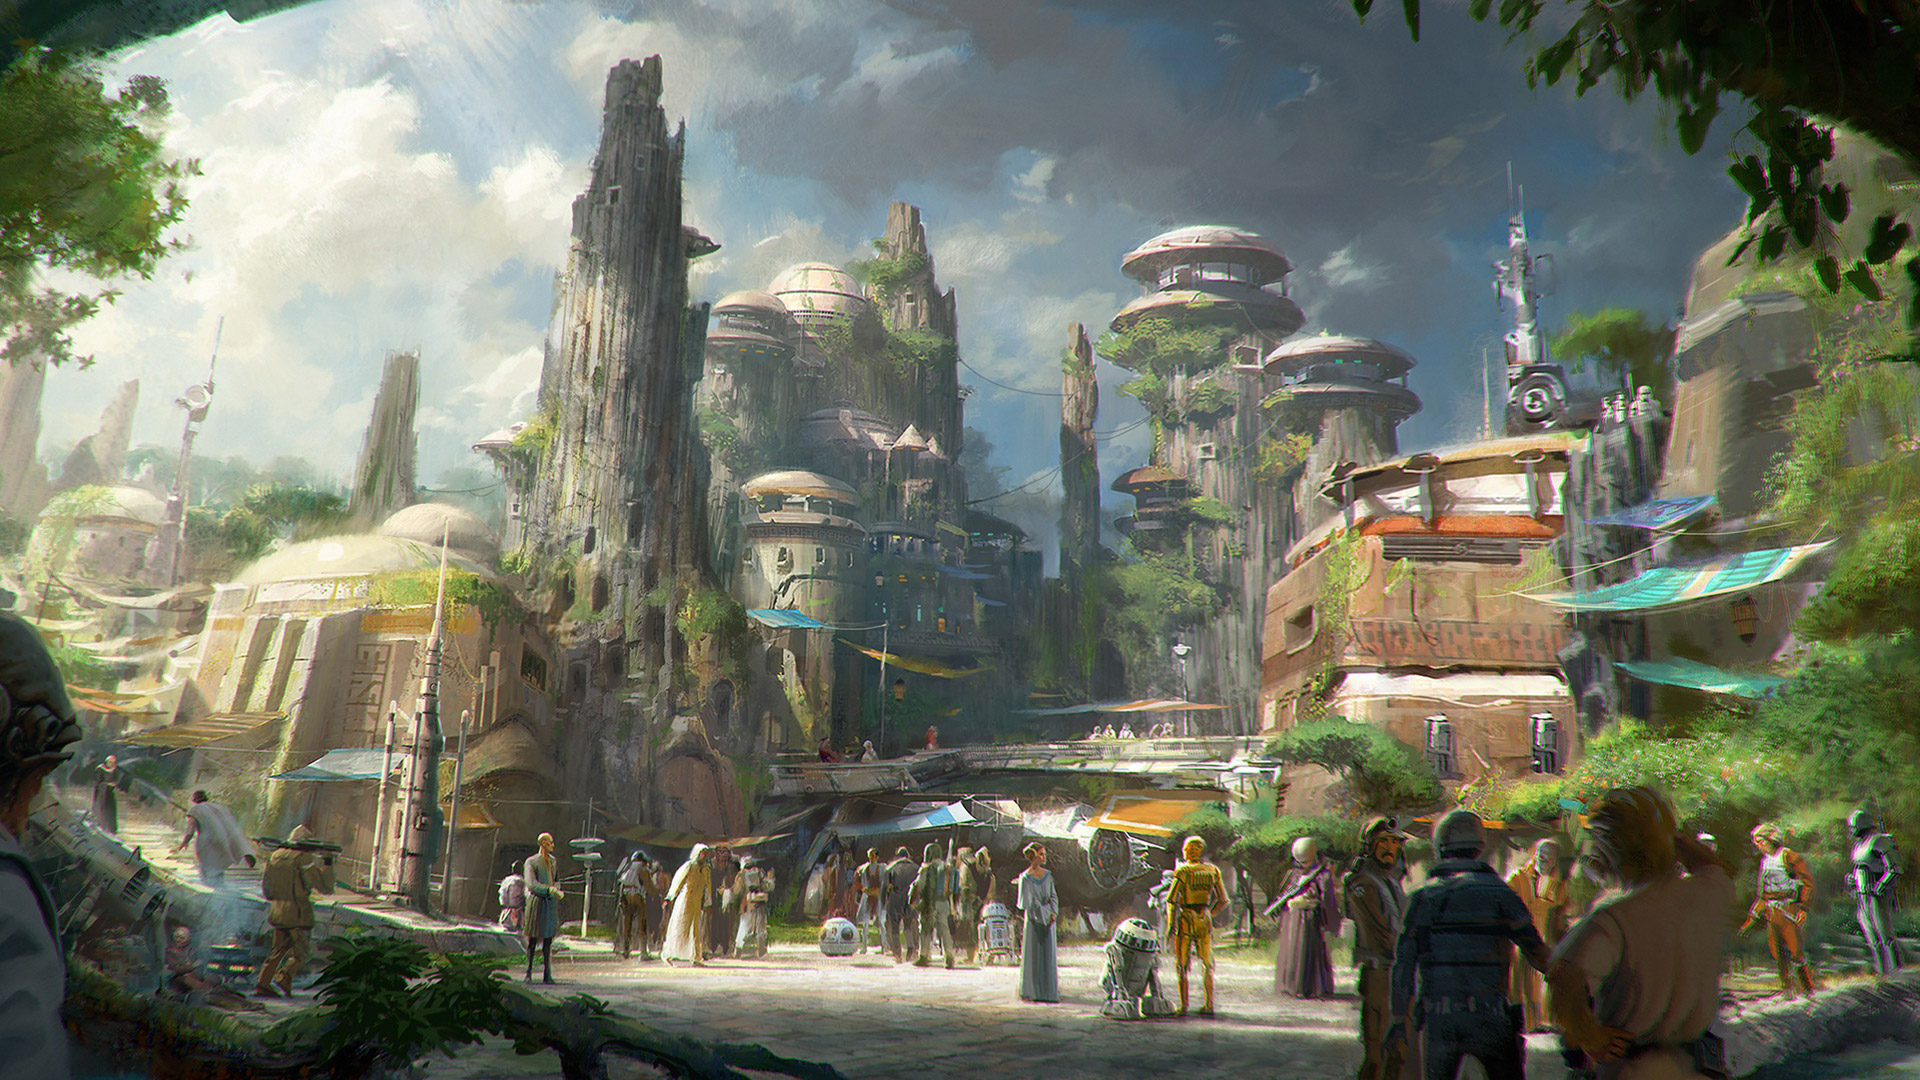 Disney confirms Star Wars theme park attractions coming, complete with cantinas